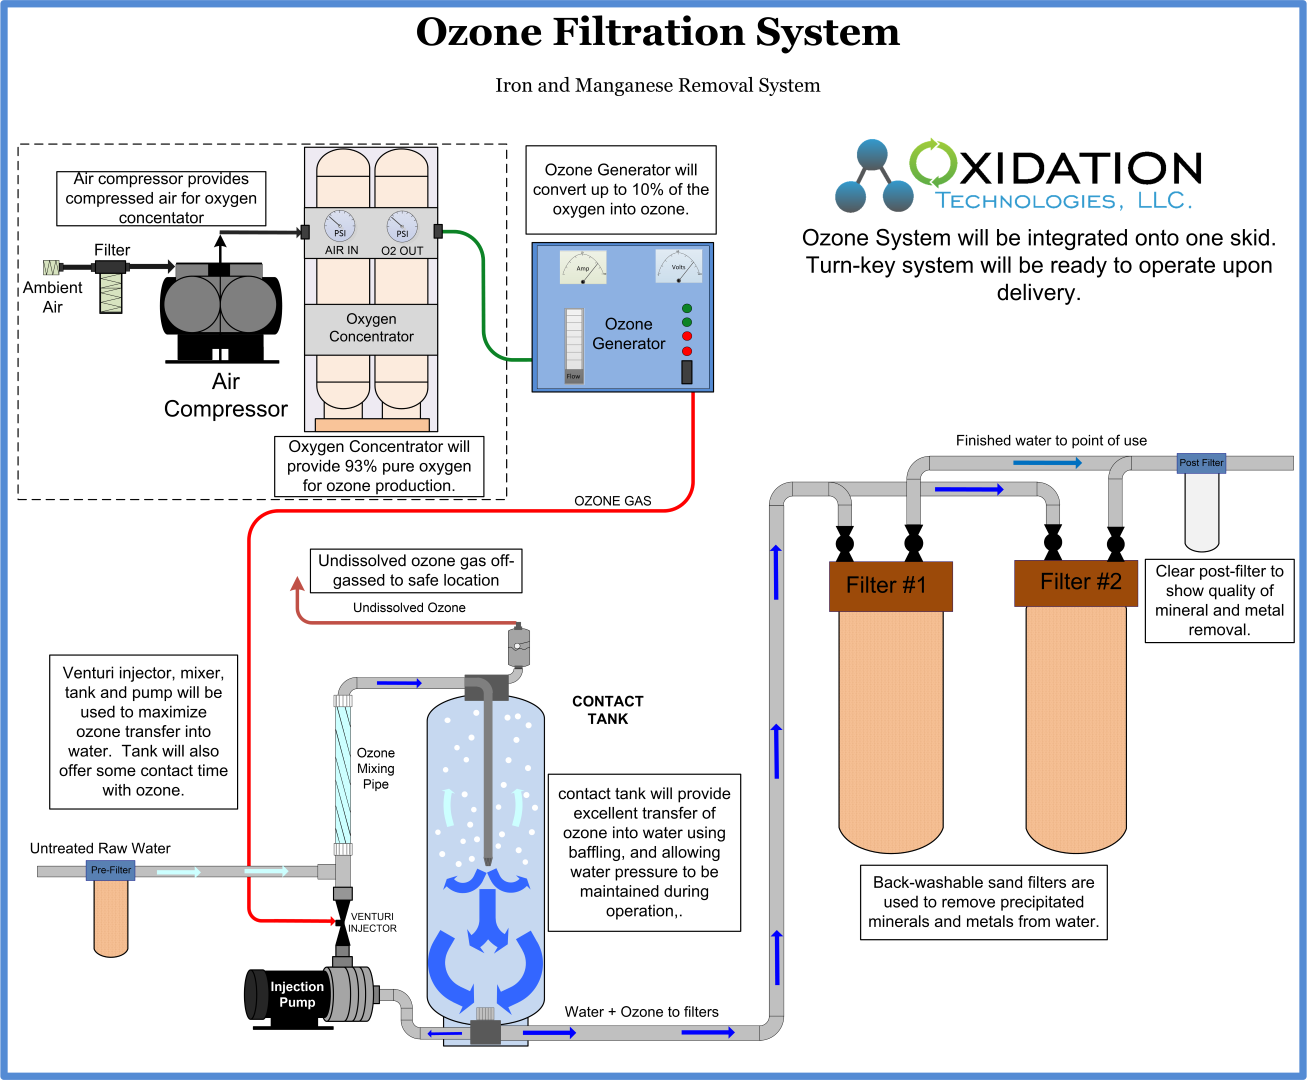 Complete Ozone Water Filtration System Water Filtration System